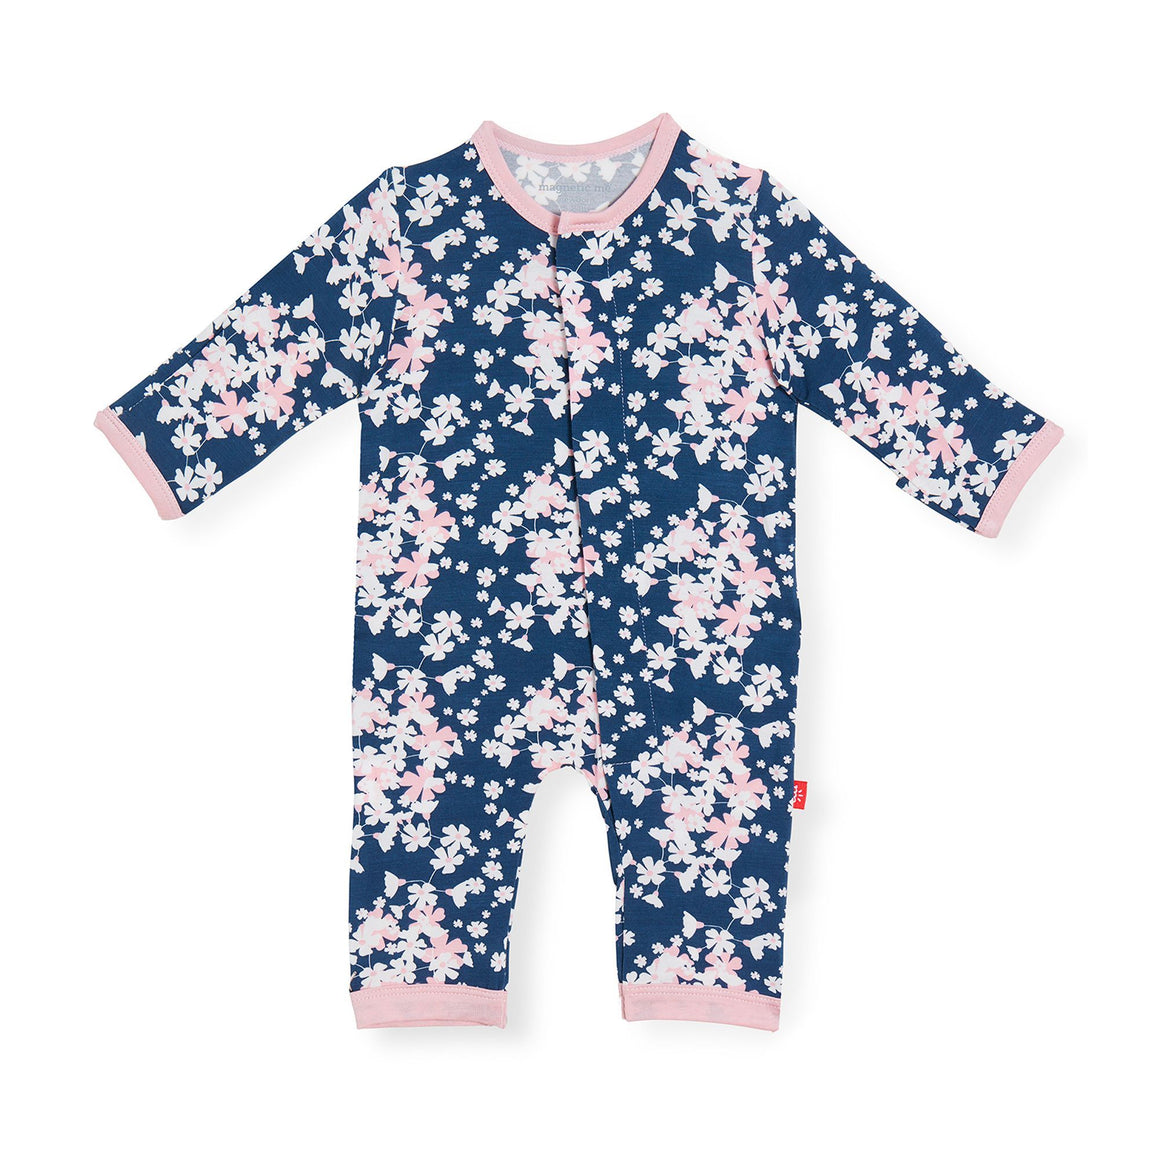 Magnificent Baby Apparel Magnetic Me Aberdeen Modal Coverall